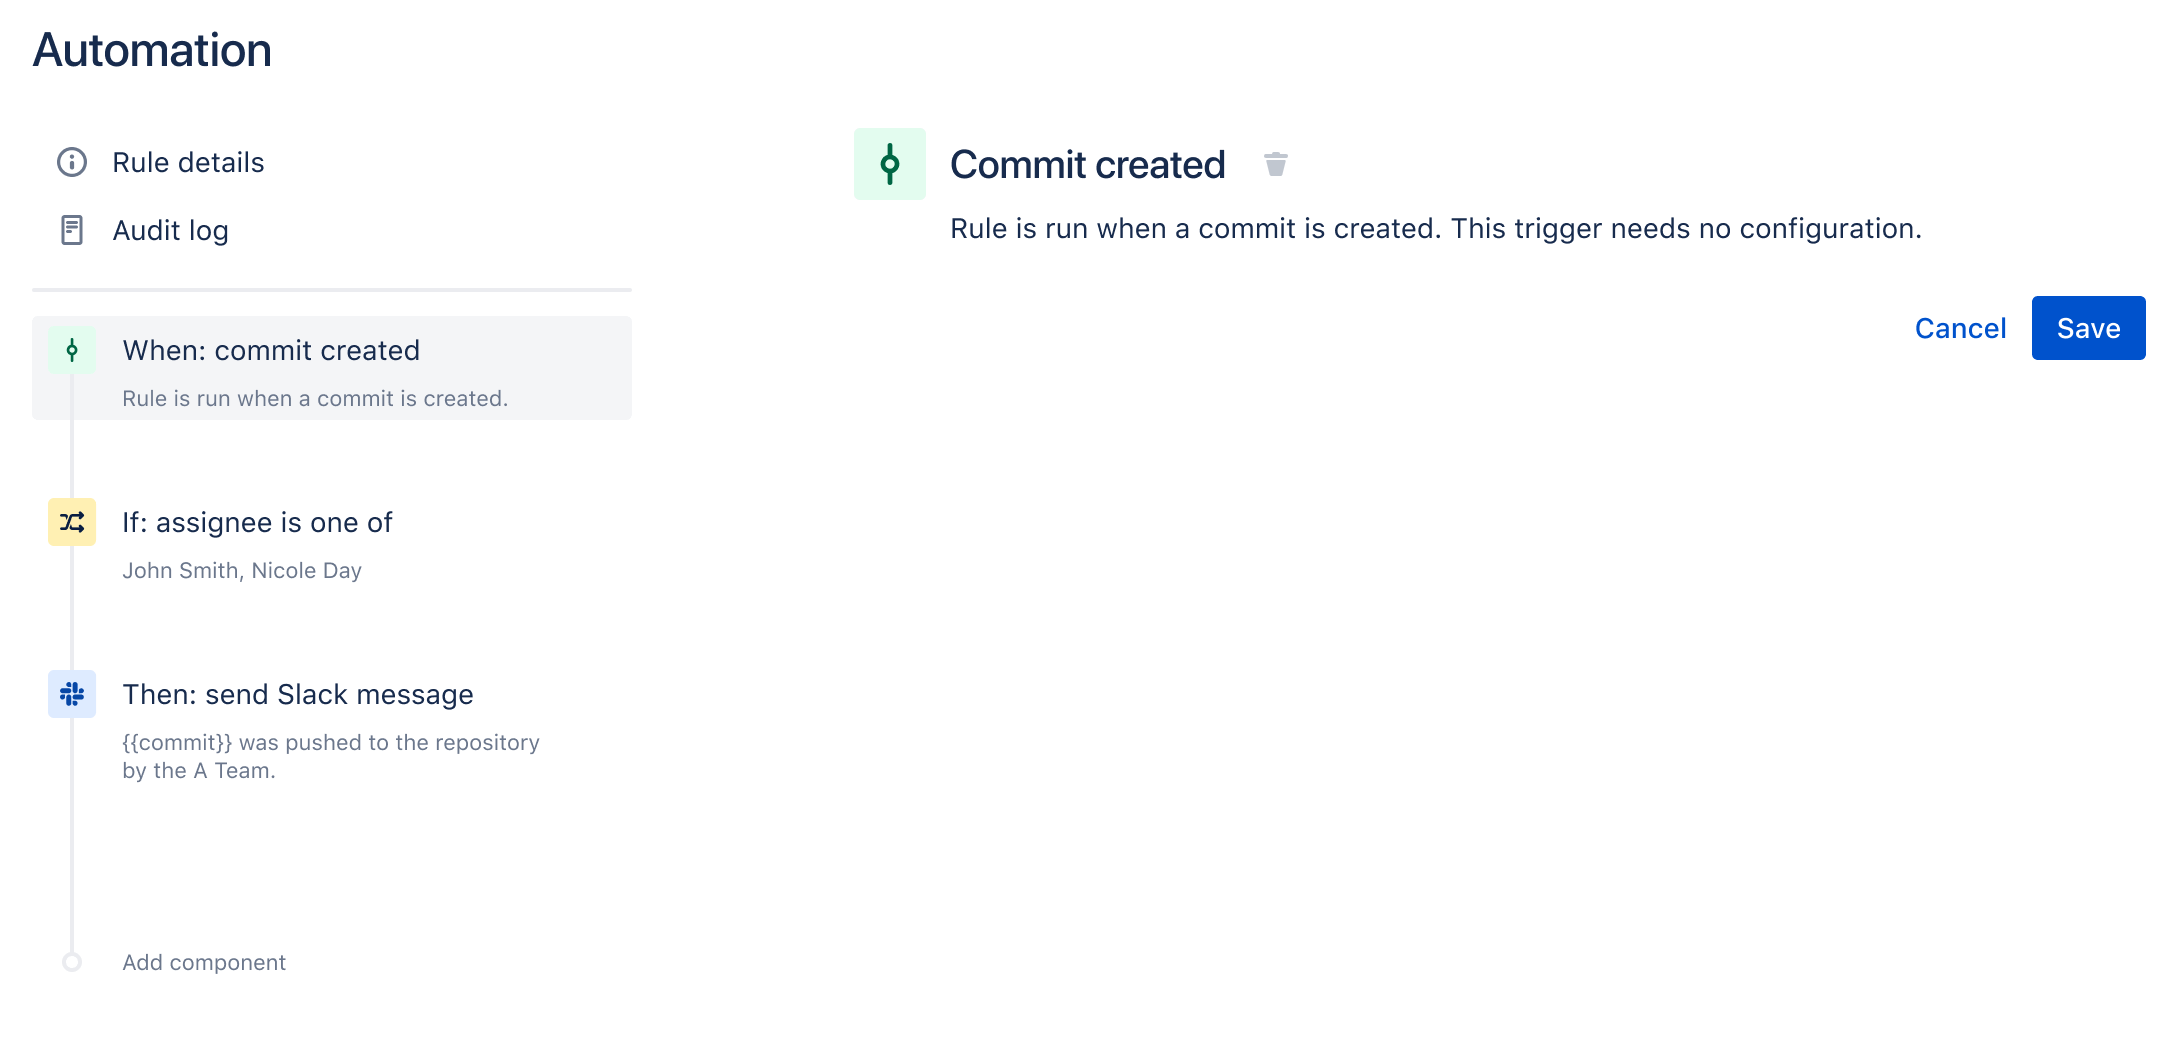 Commit created